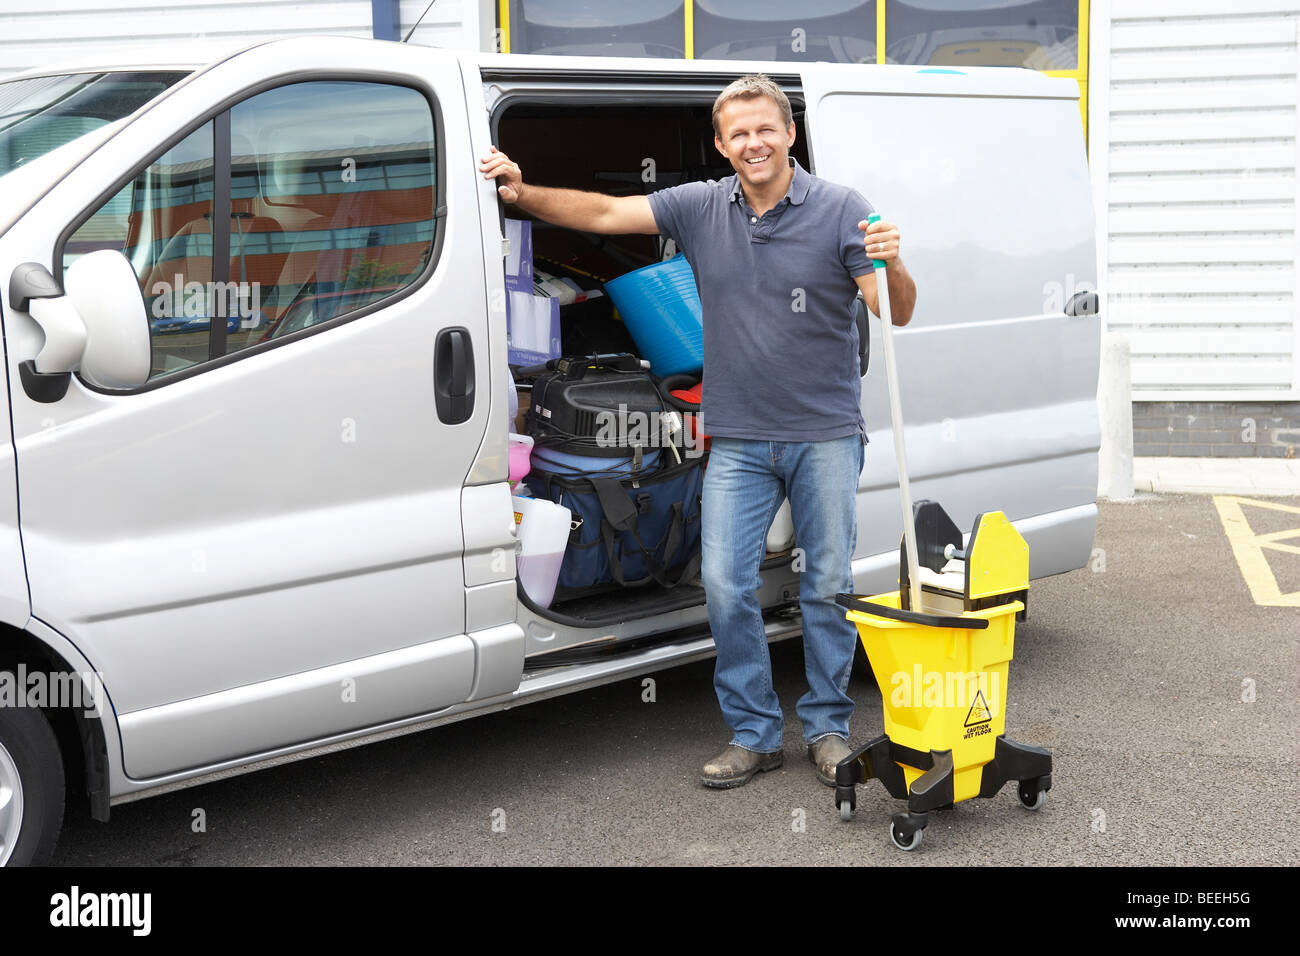 Cleaner standing next to van - Stock Image